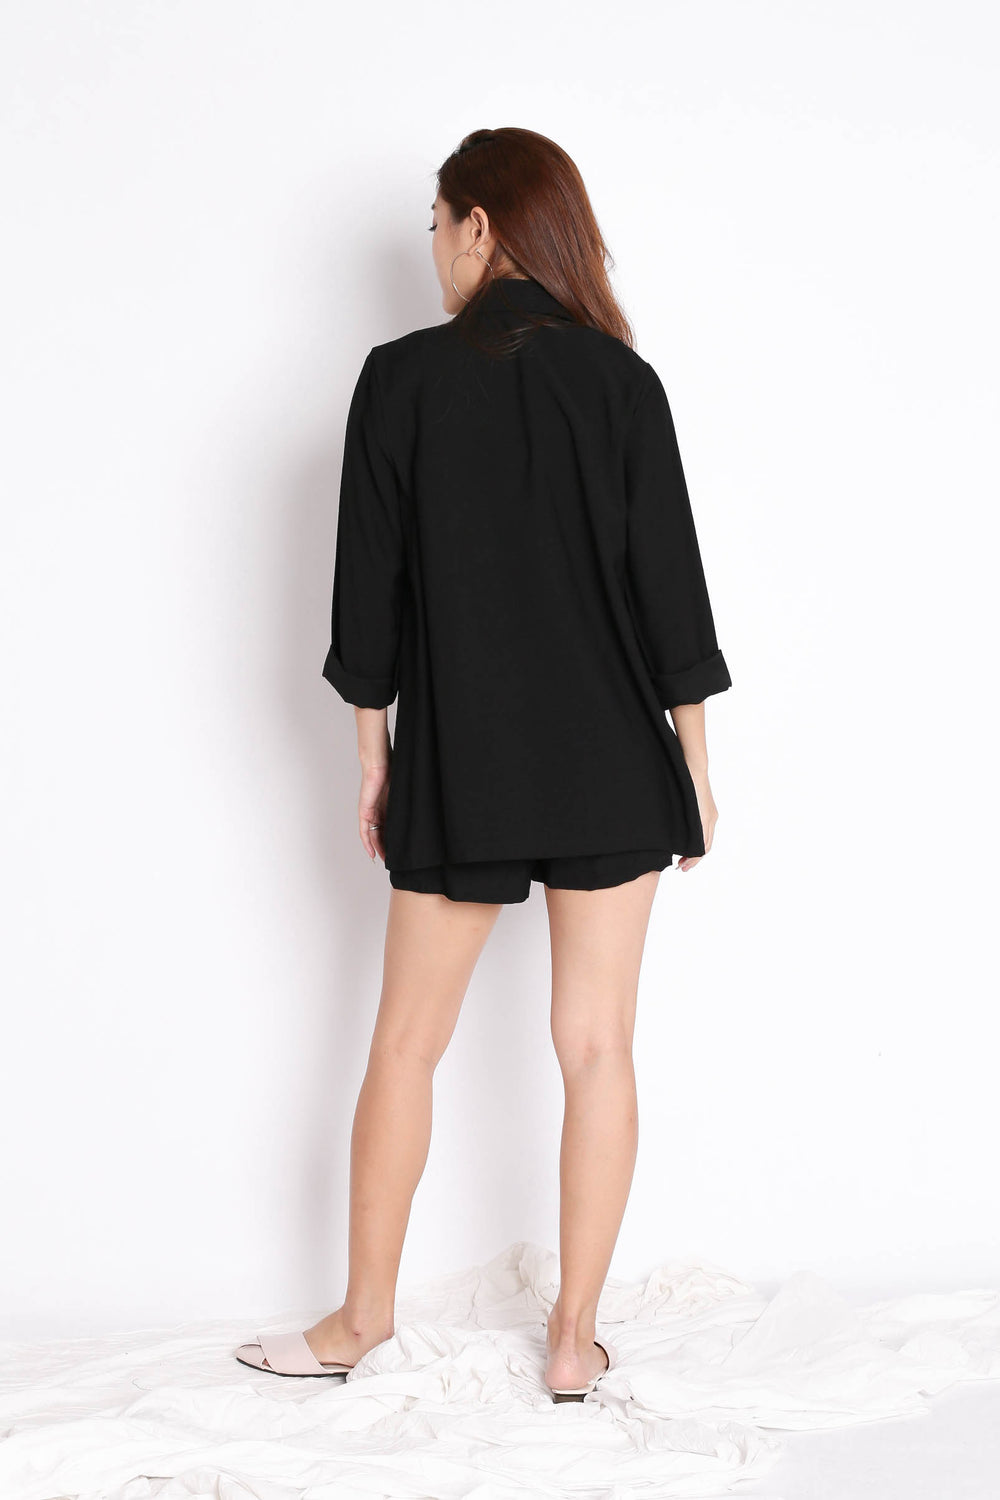 STELLIZ BLAZER AND SHORTS SET IN BLACK